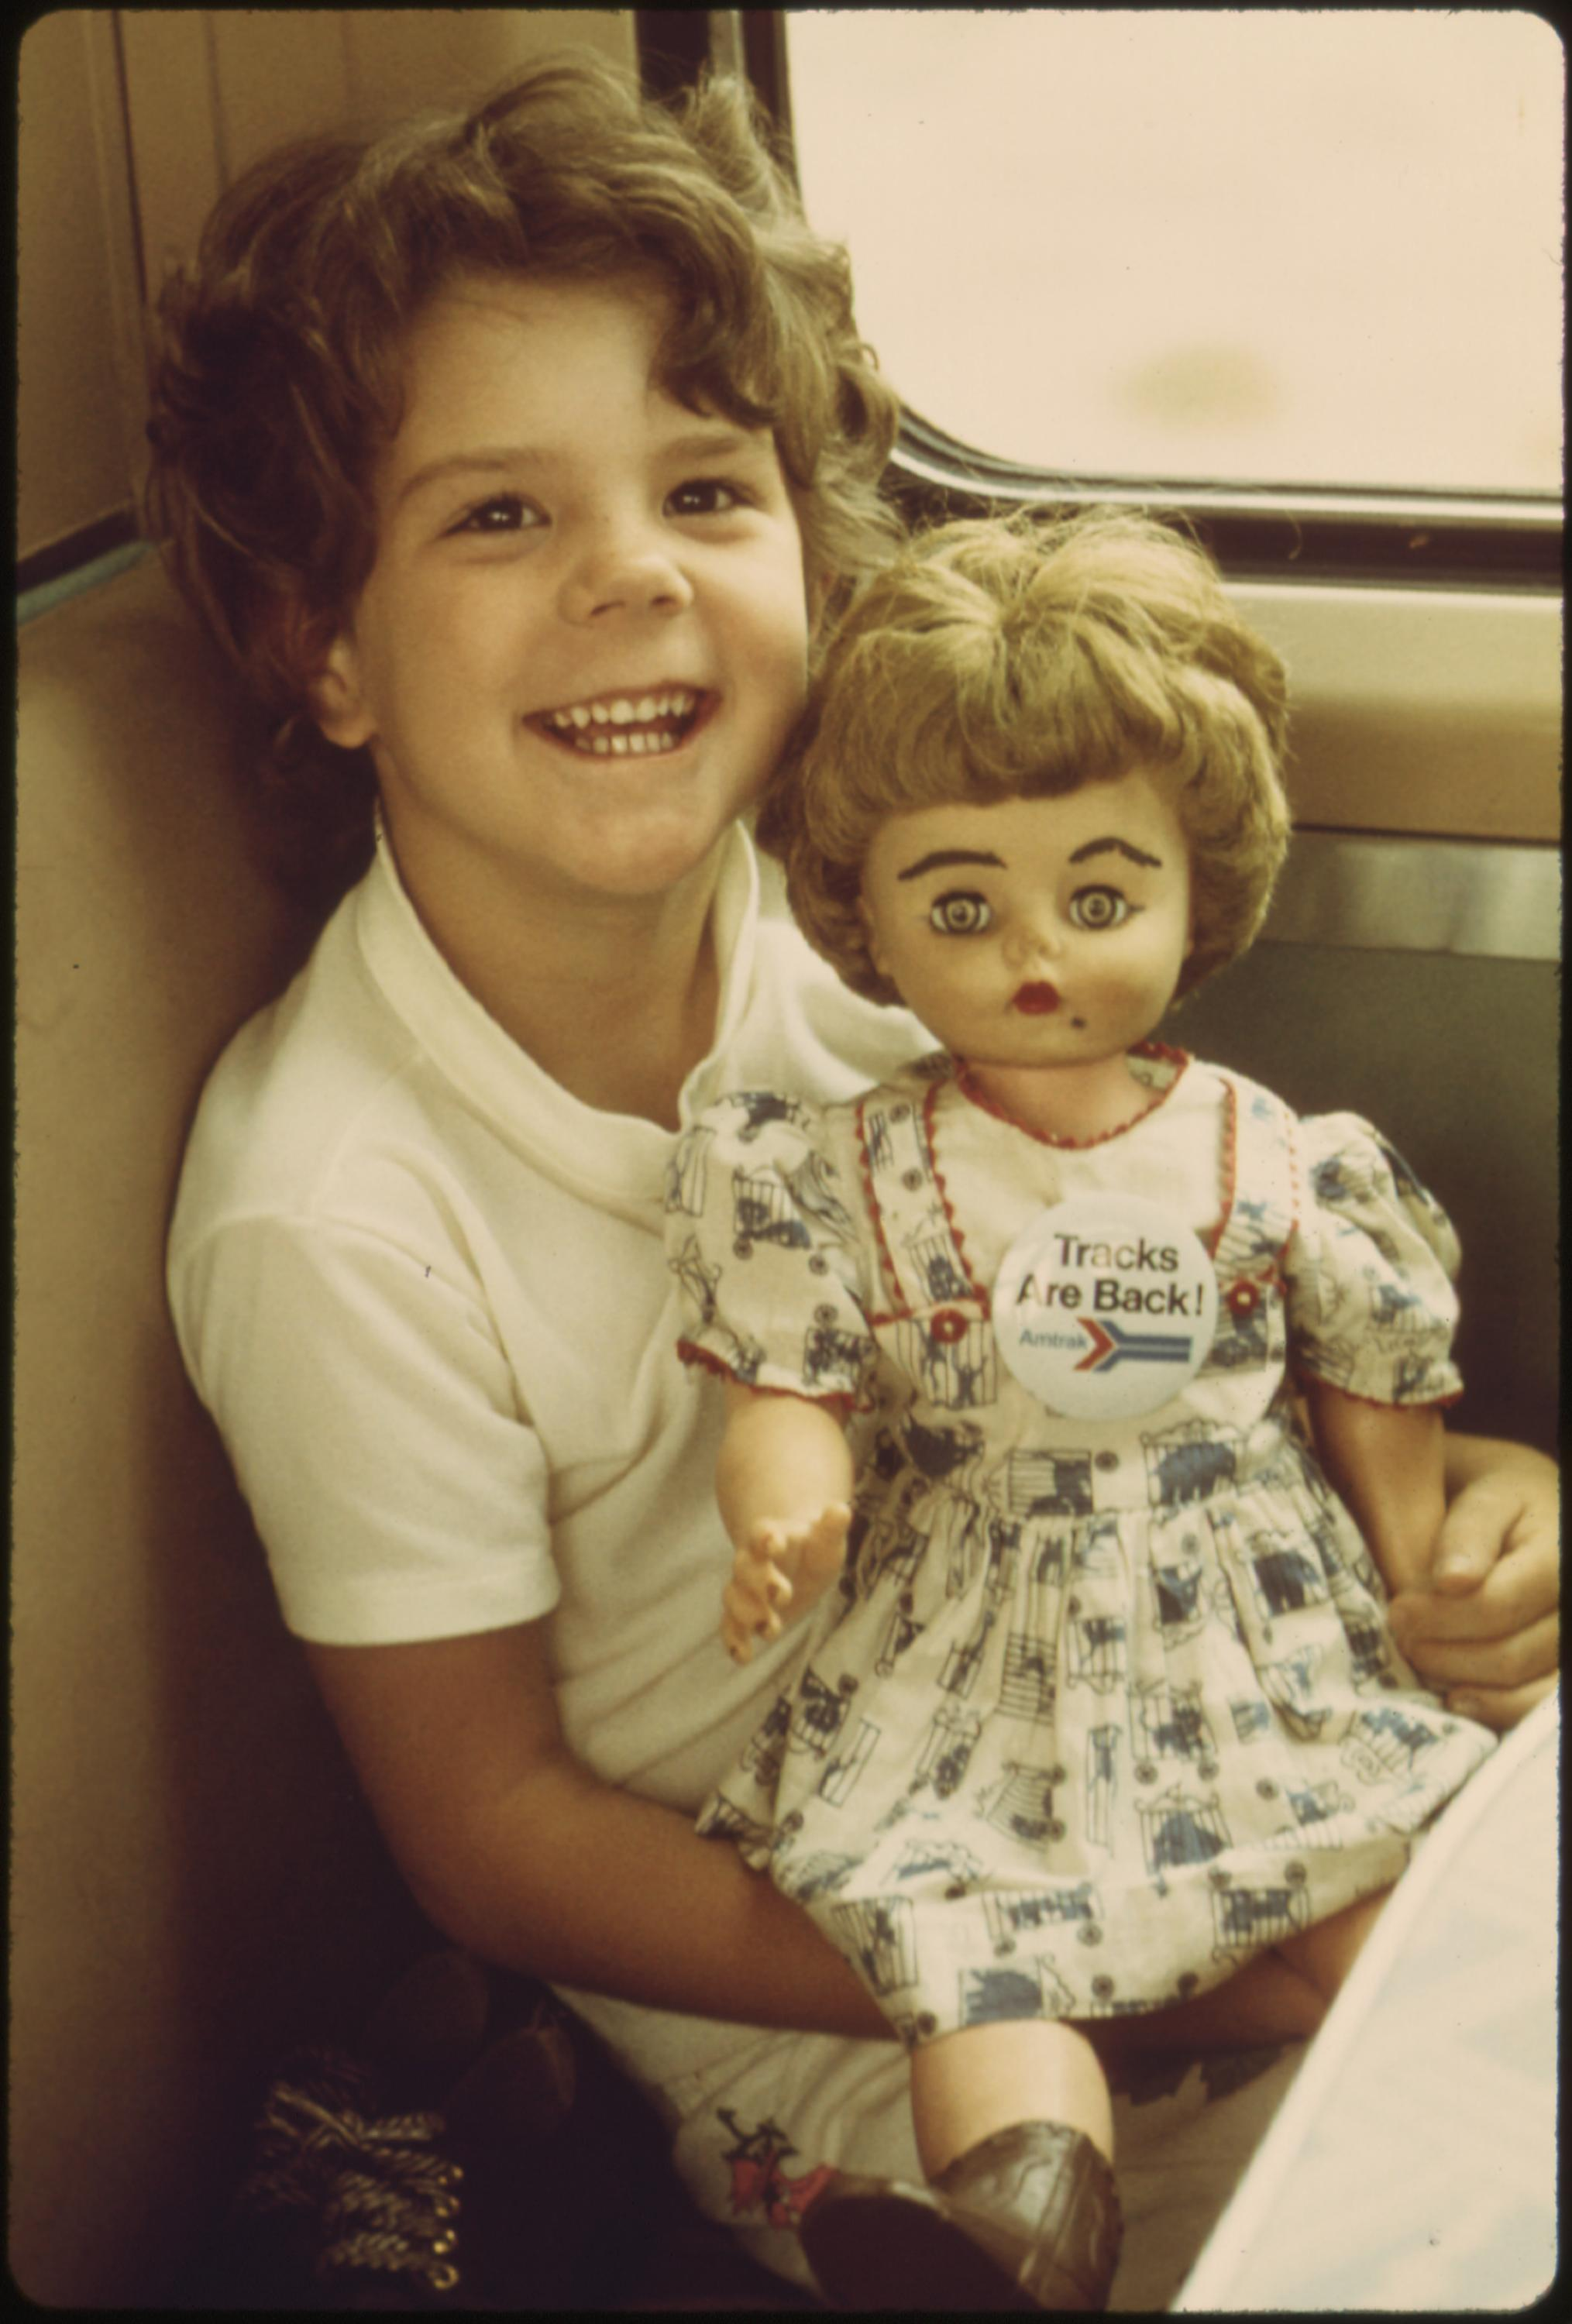 Young girl shows off her doll on the Southwest Limited which sports a pin proclaiming Tracks are Back!, June 1974